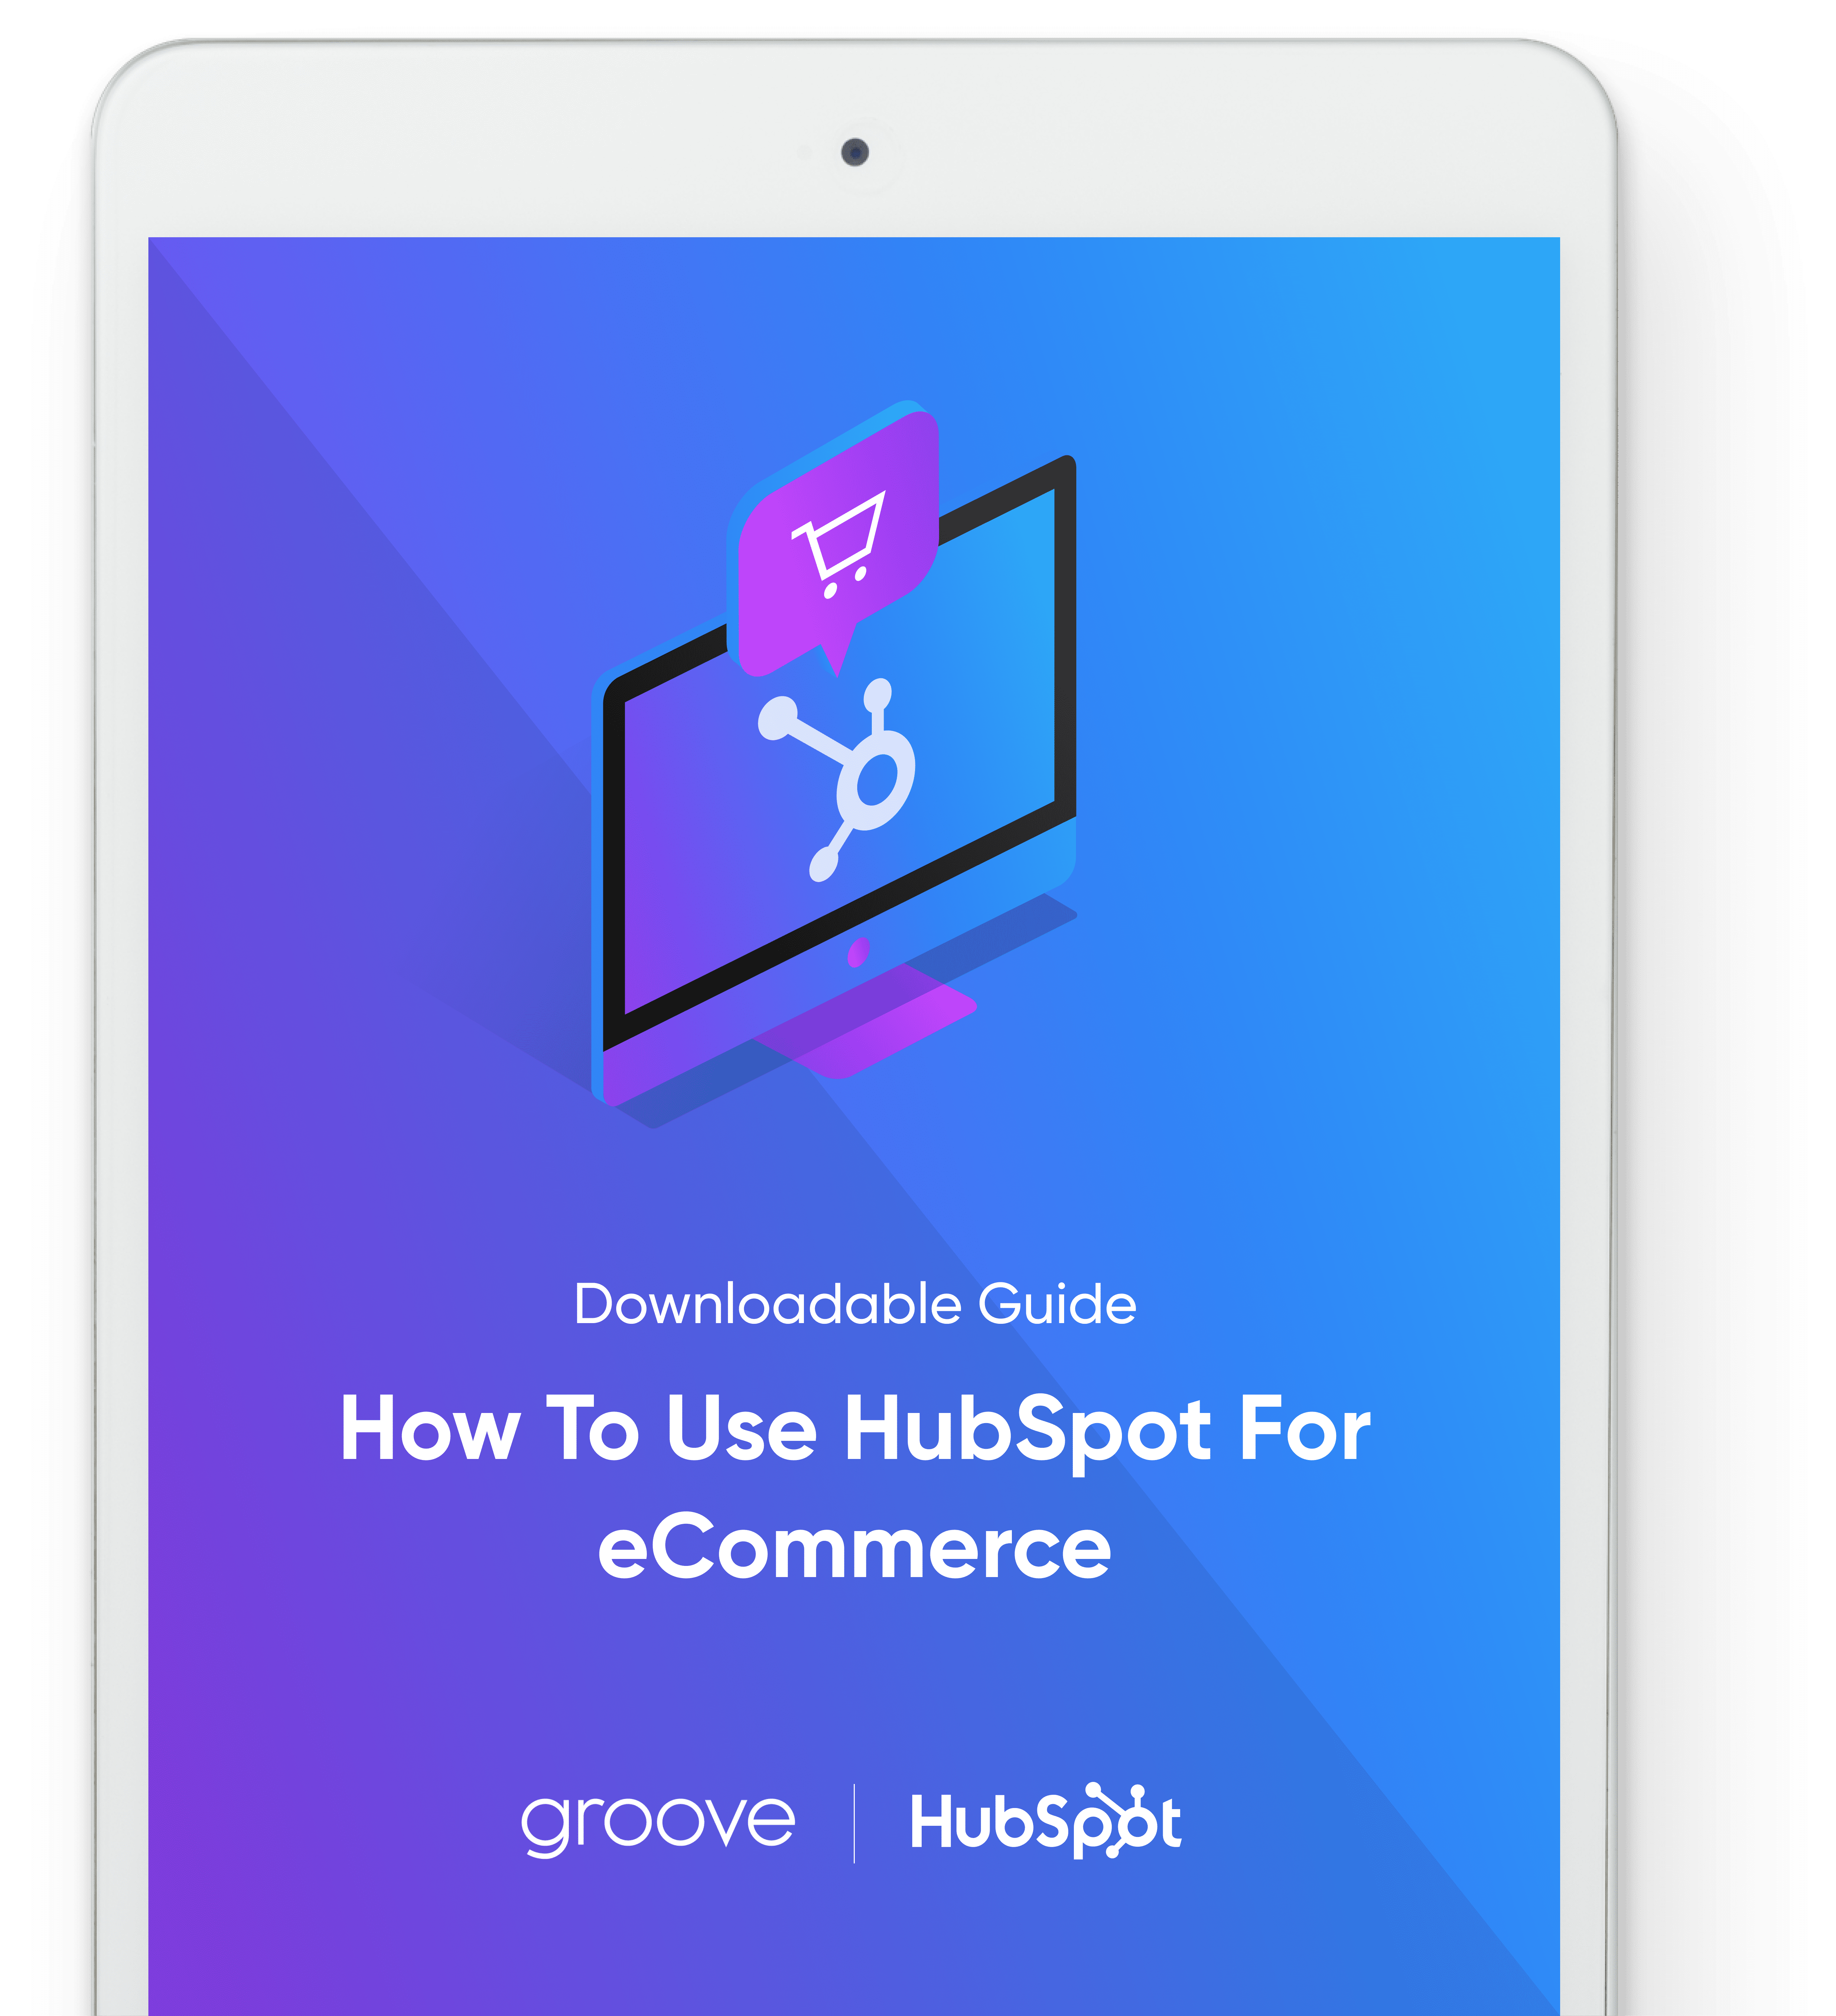 Downloadable Guide: How To Use HubSpot For eCommerce